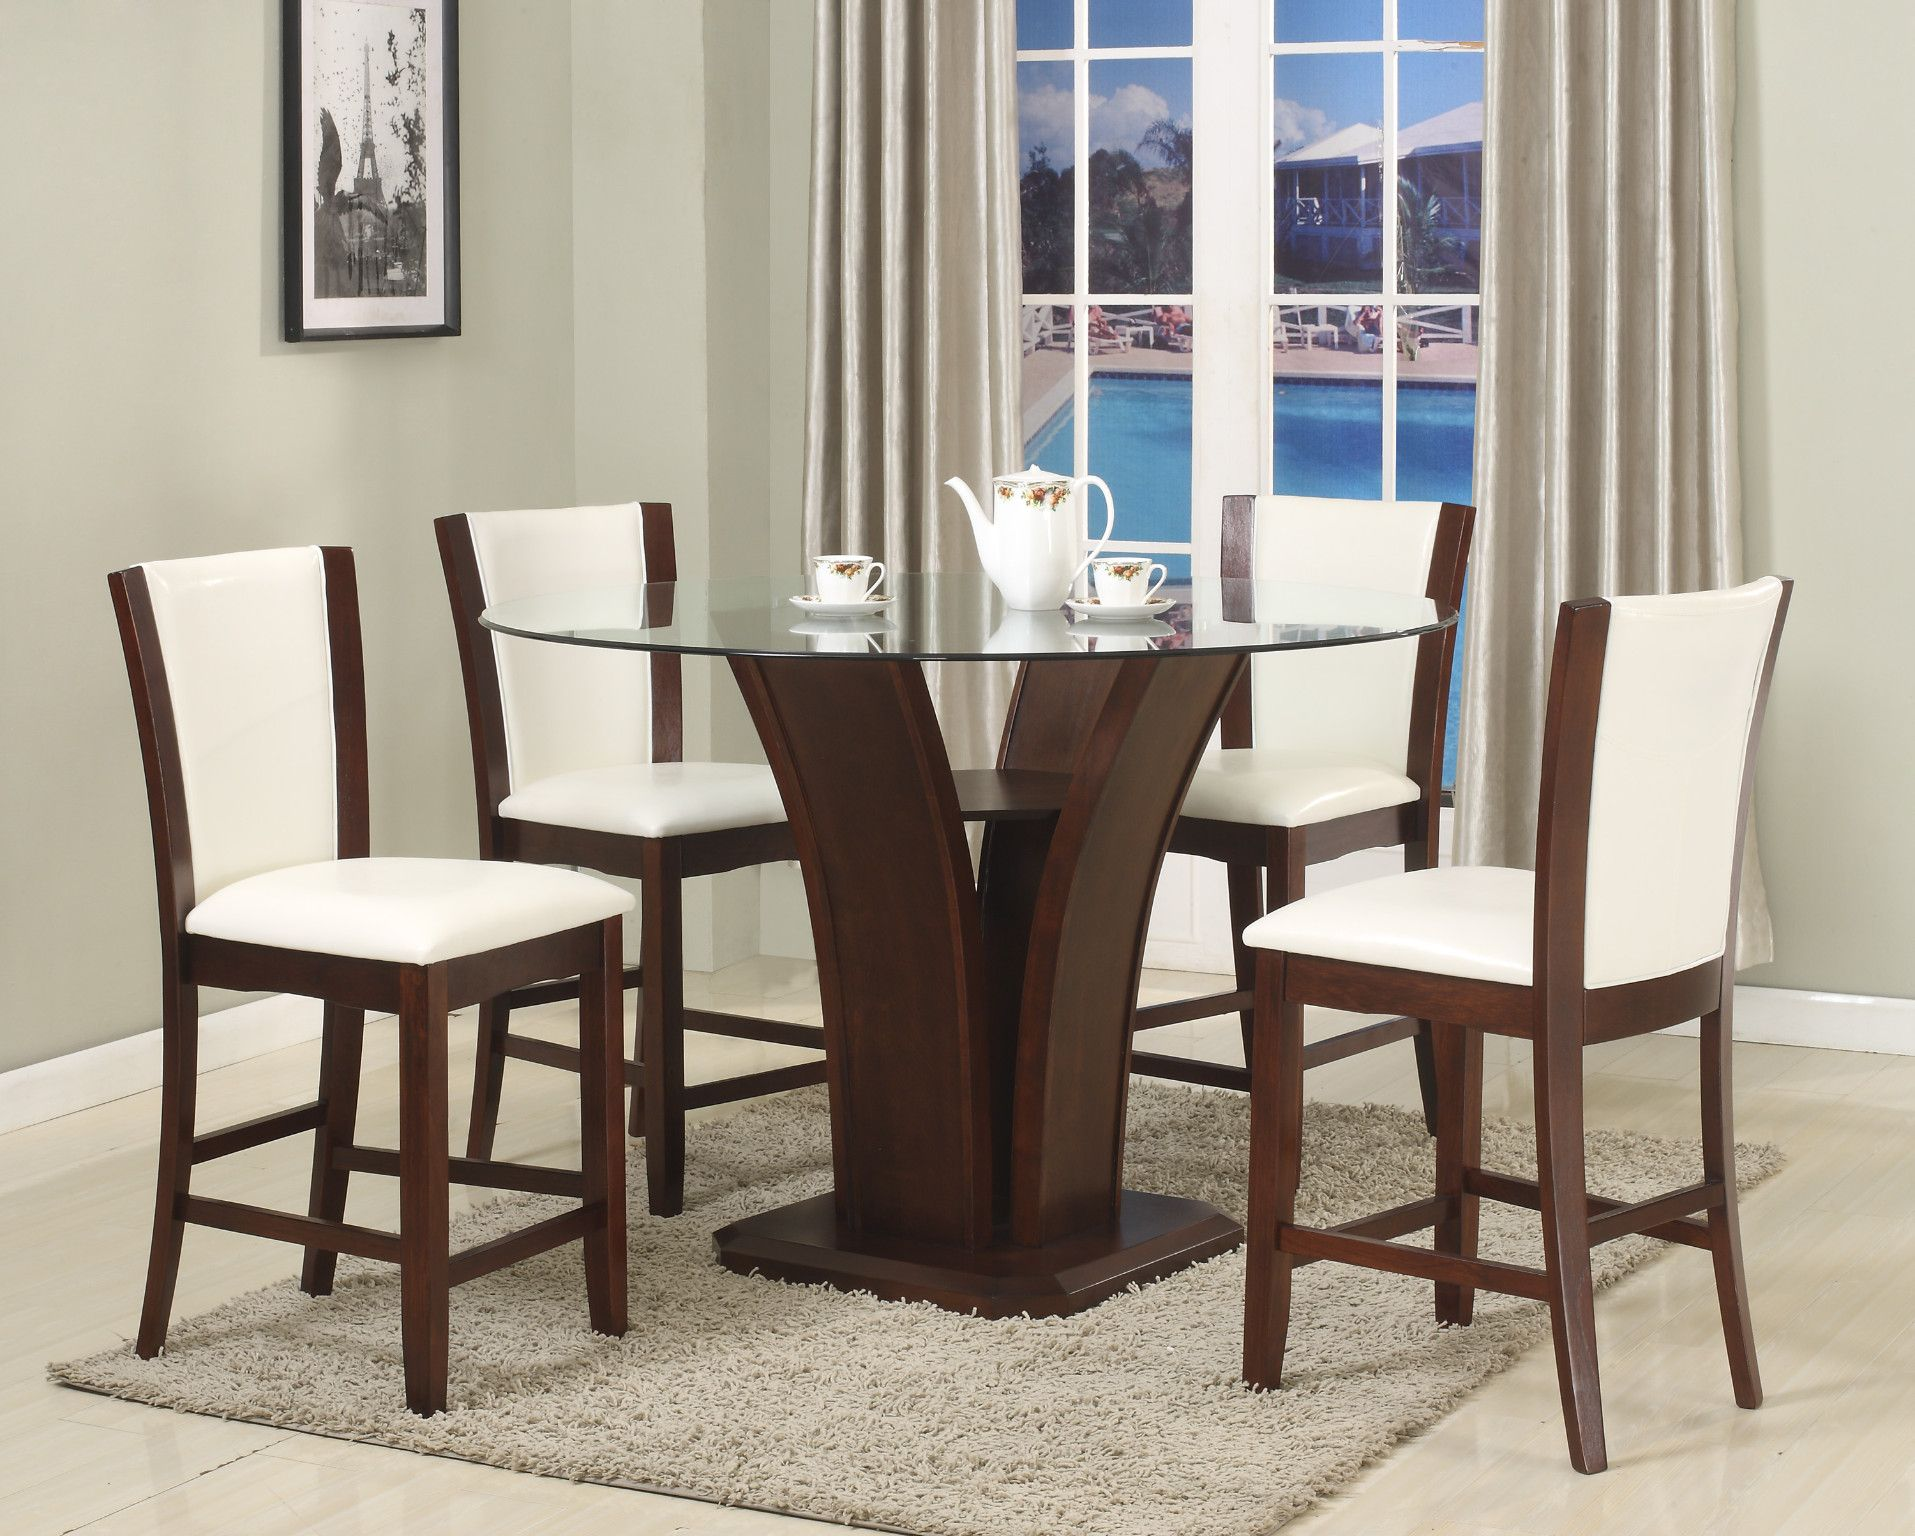 Camelia White 5 Piece Counter Height Table And 4 Chairs 649 0 Counter Height Dining Table Counter Height Dining Room Tables Counter Height Dining Table Set